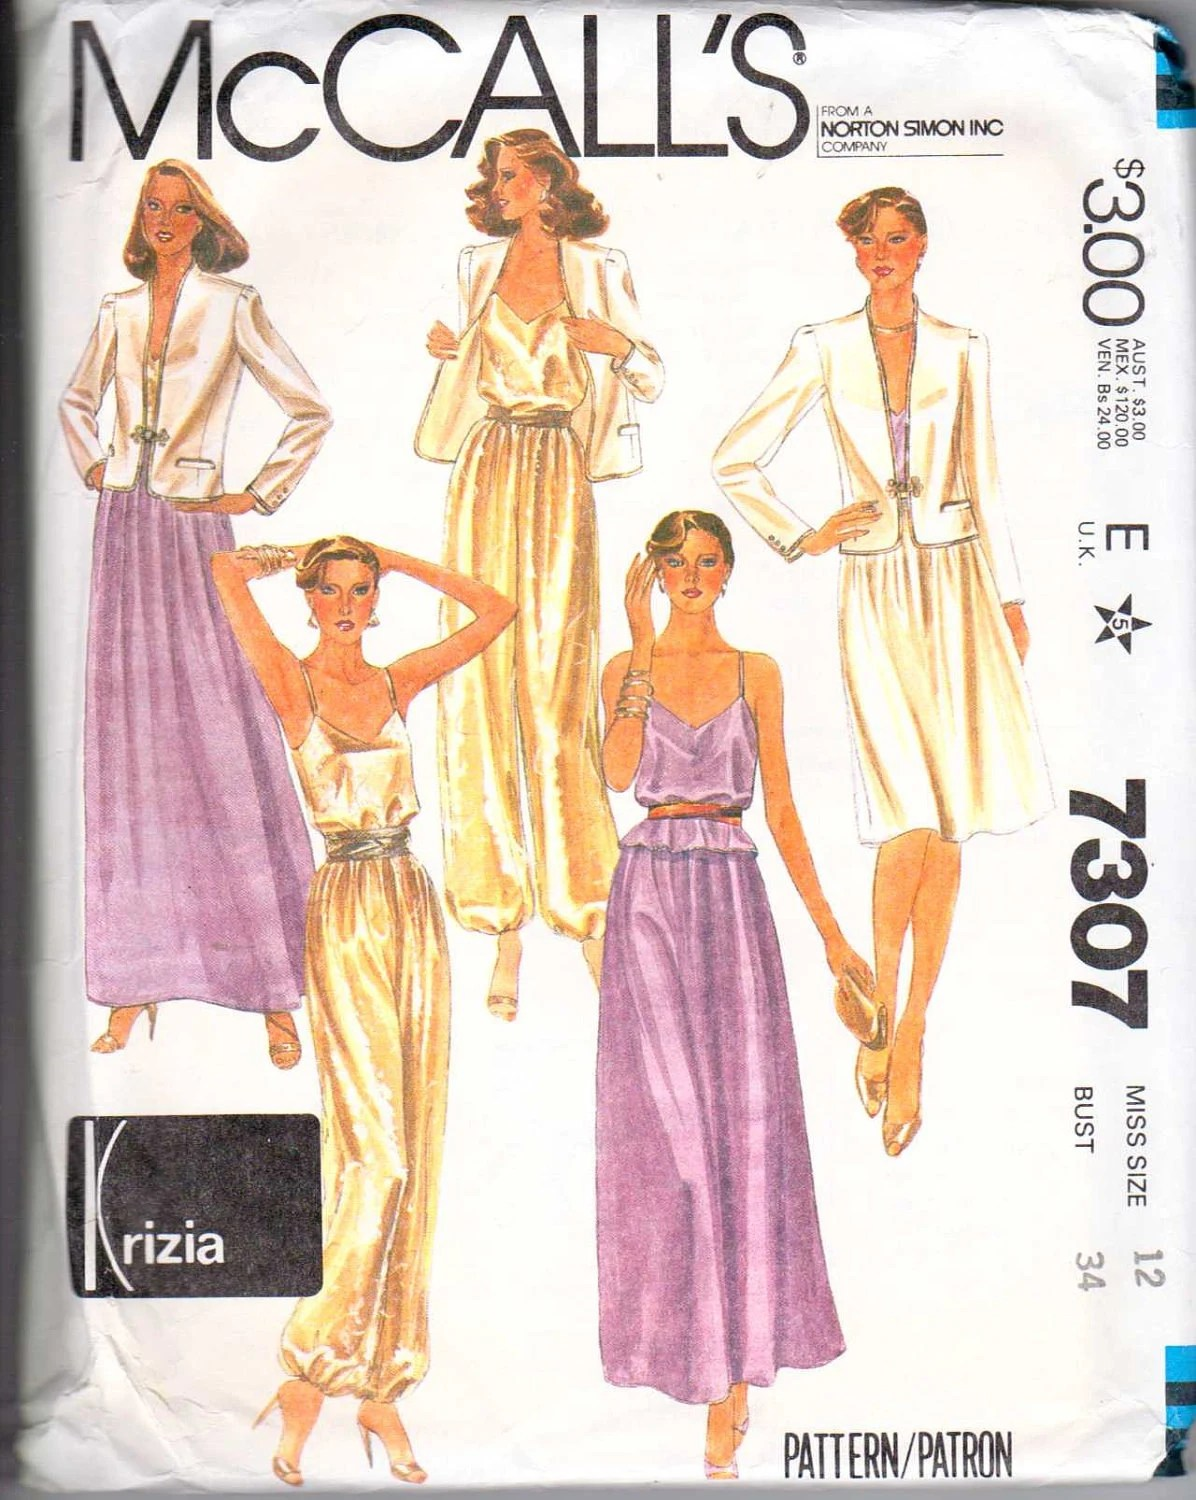 1980s Krizia evening separates pattern - McCall's 7307